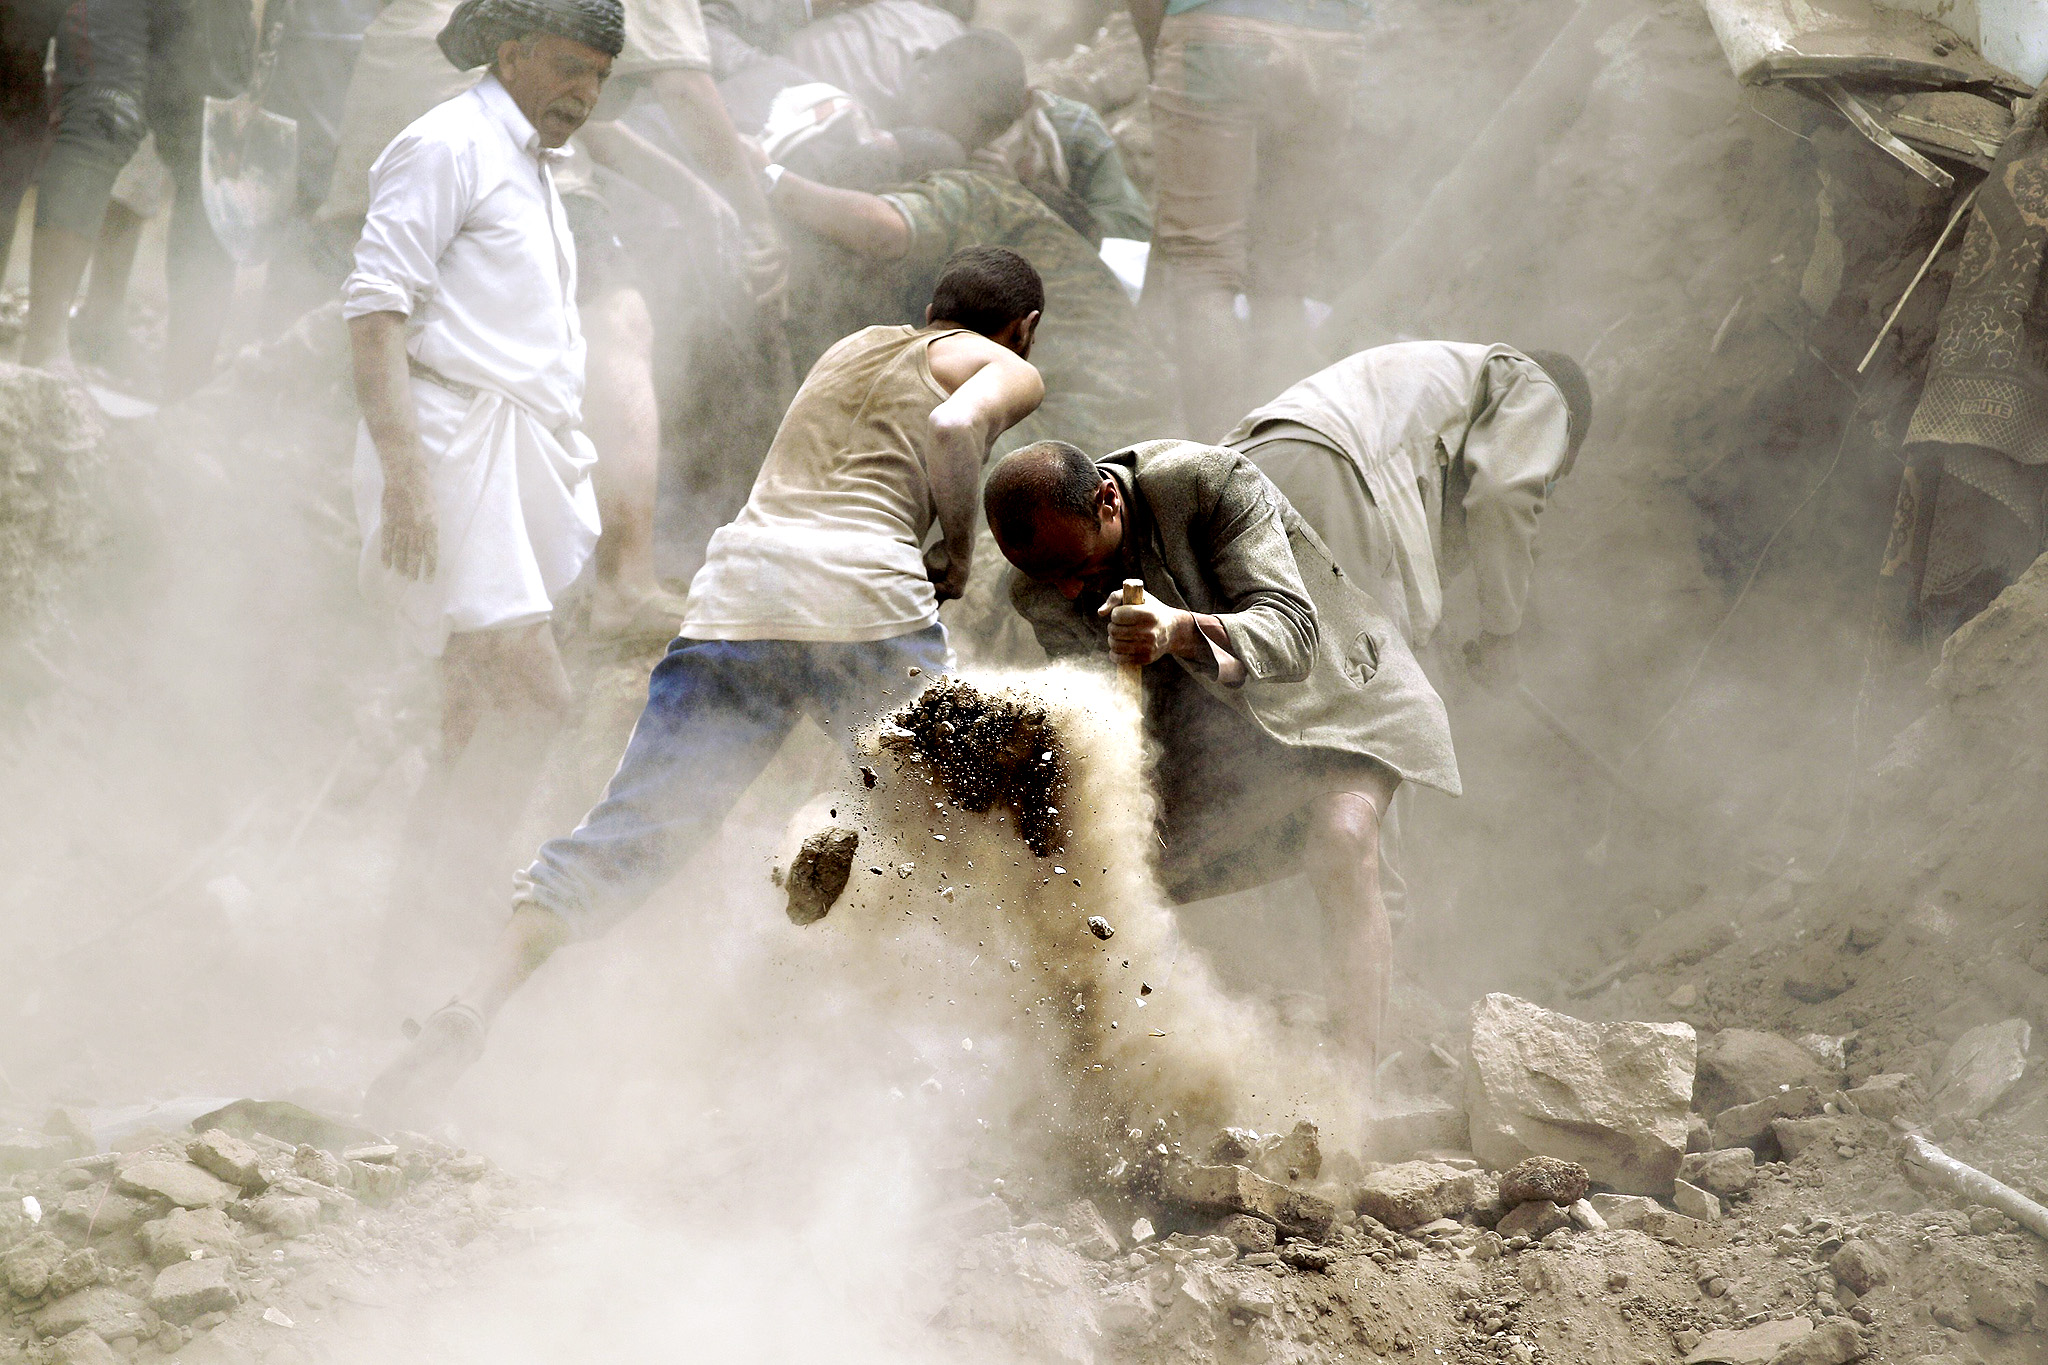 Yemenis search for survivors under the rubble of houses in the UNESCO-listed heritage site in the old city of Yemeni capital Sanaa, on June 12, 2015 following an overnight Saudi-led air strike. Residents said the pre-dawn strike, which killed five people  was the first direct hit on old Sanaa since the launch of the bombing campaign against Huthi rebels in late March.